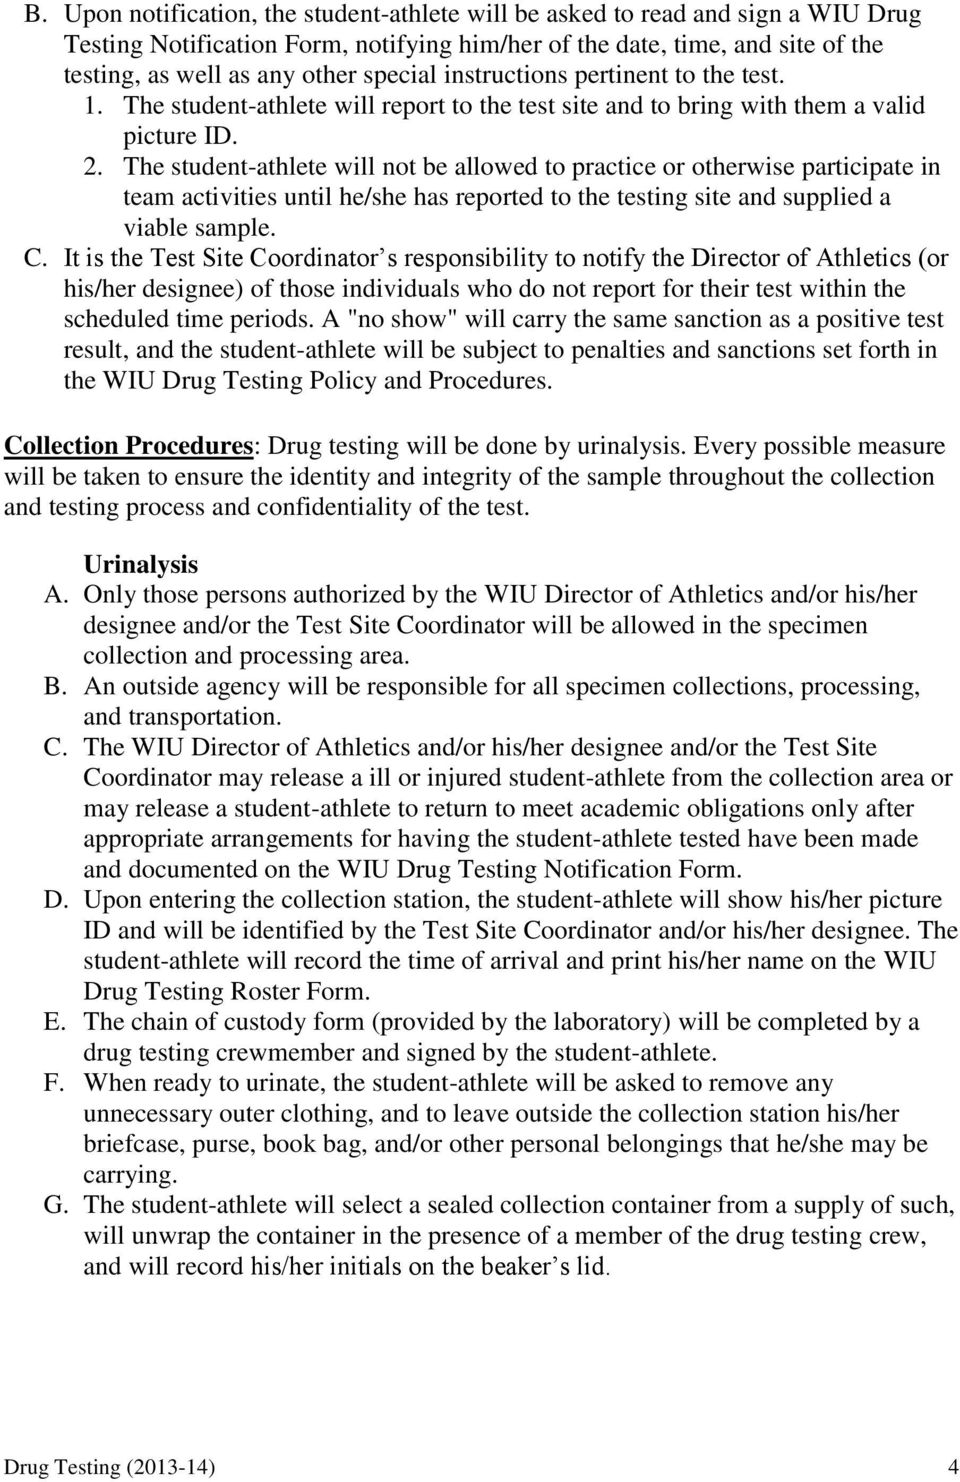 The student-athlete will not be allowed to practice or otherwise participate in team activities until he/she has reported to the testing site and supplied a viable sample. C.